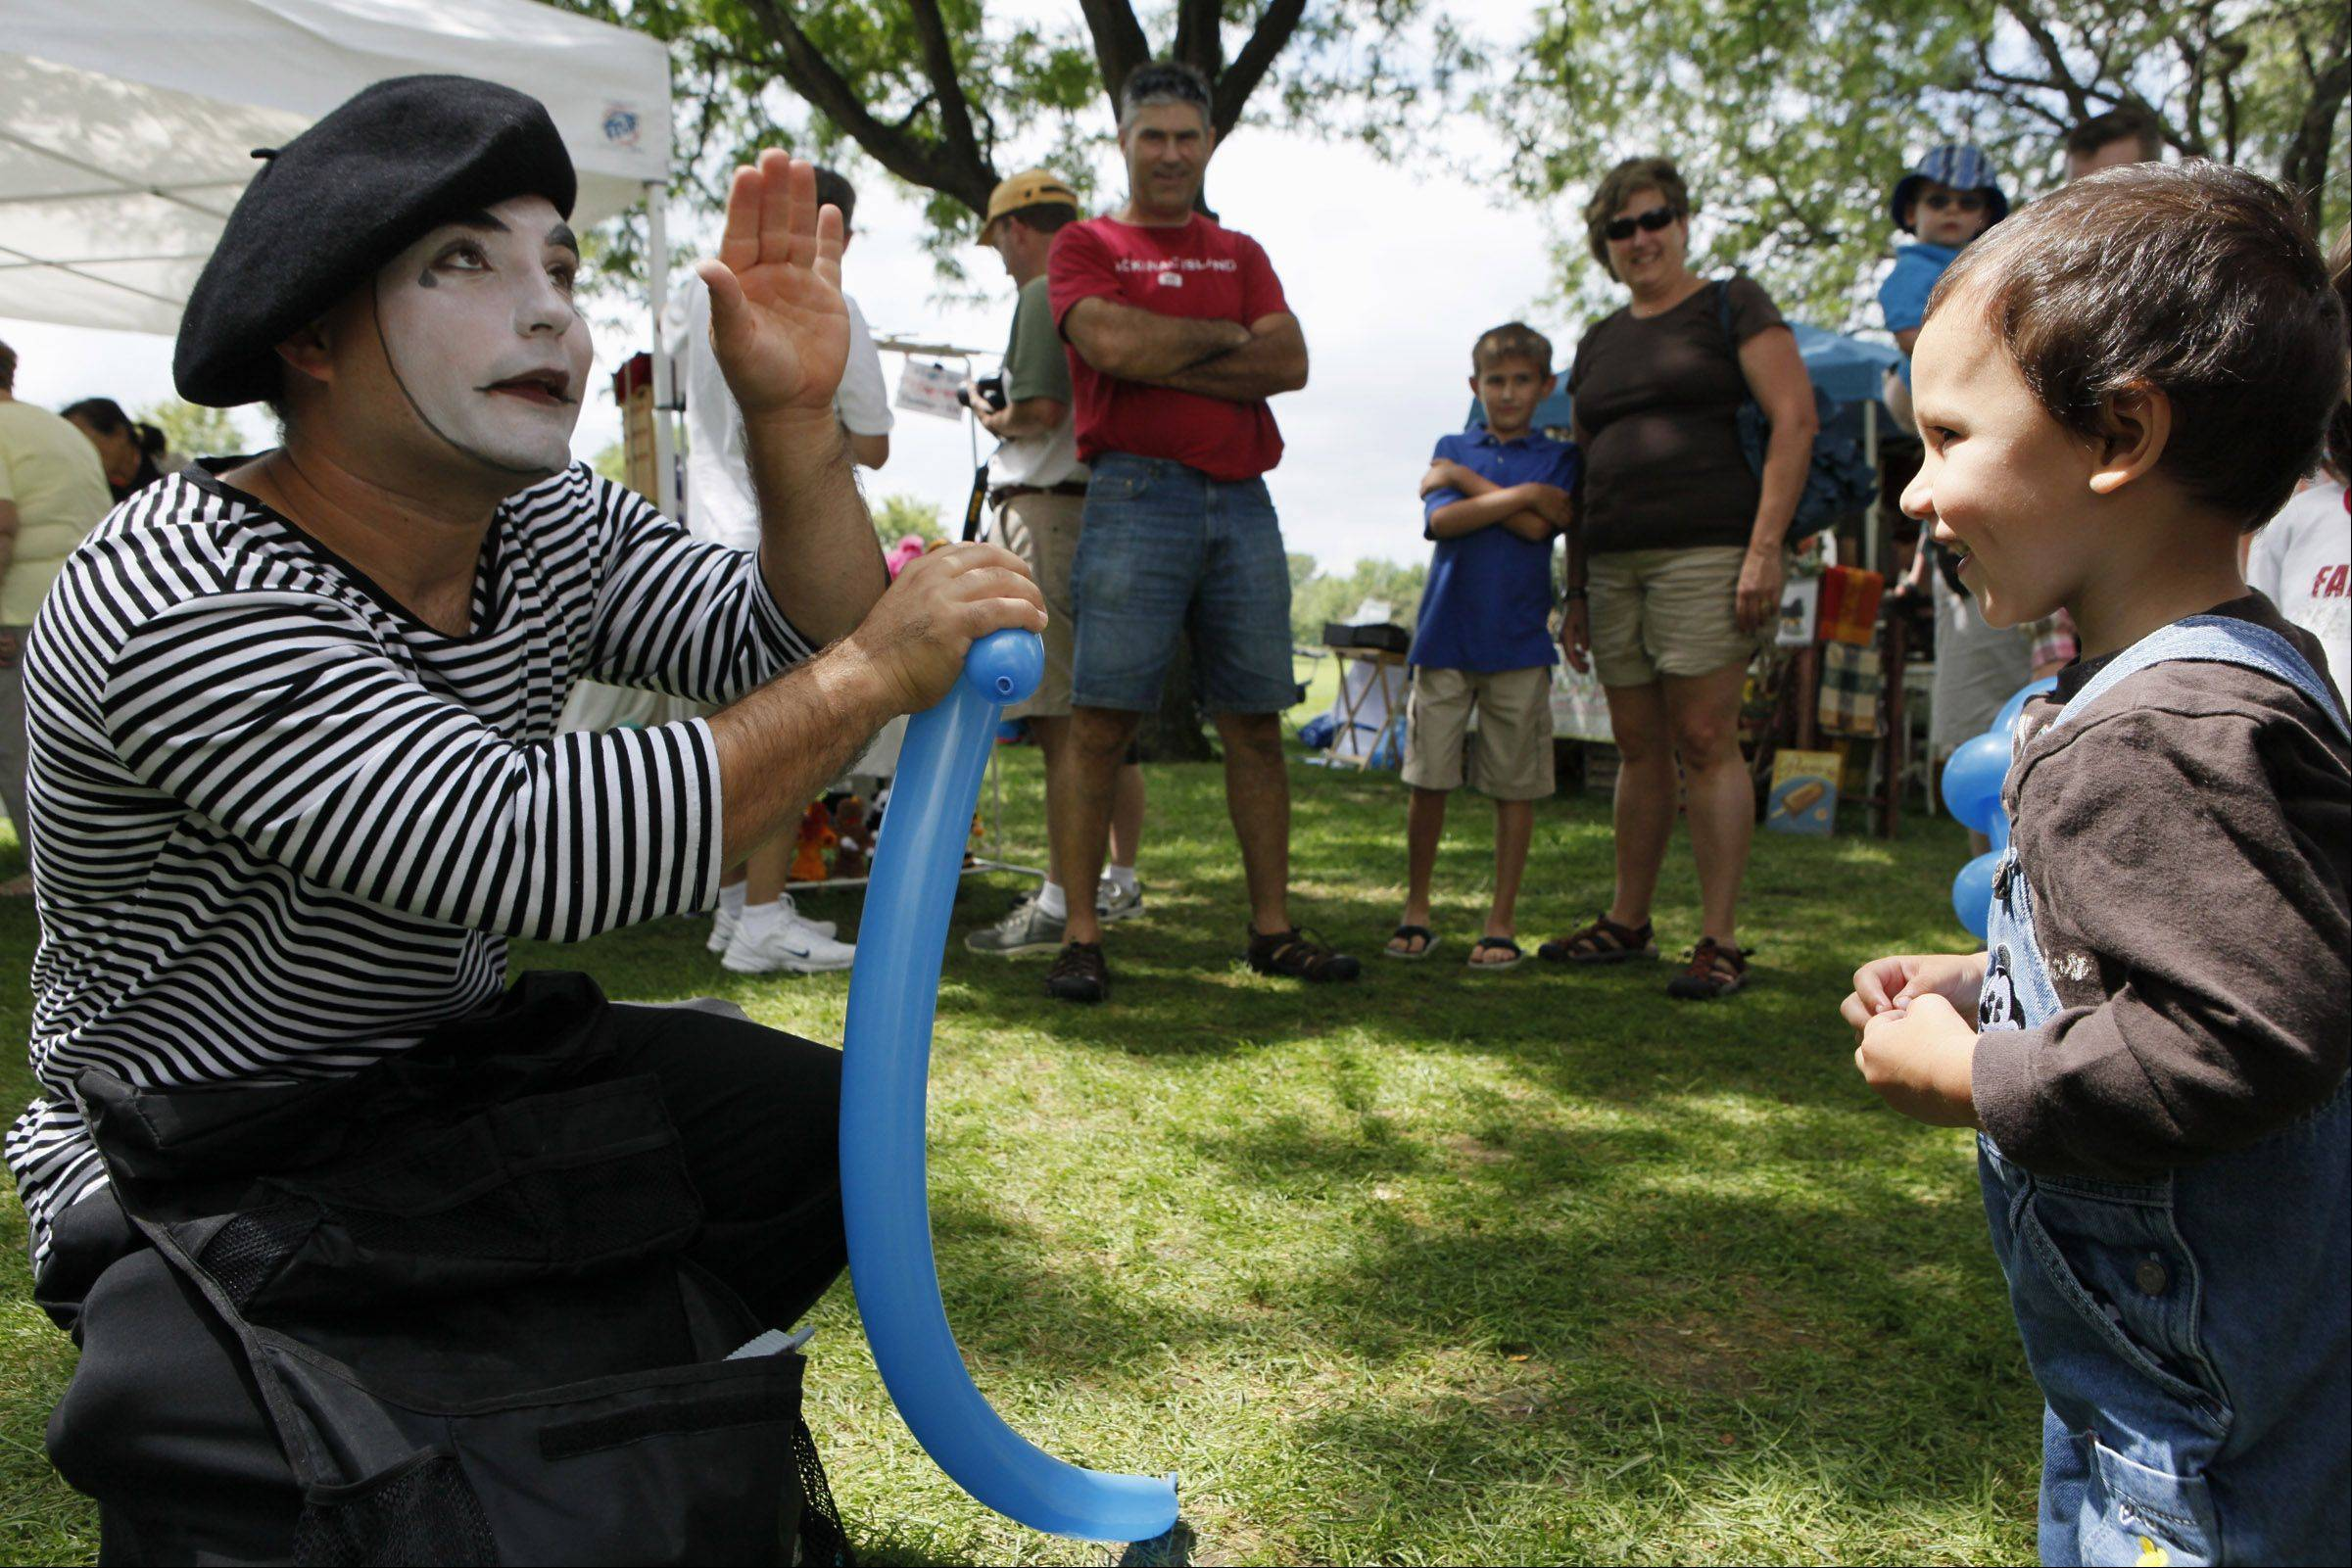 A mime makes a balloon gun for Ronan Mendoza, 2, during the Cantigny Park�s French Connection Day Sunday in Wheaton.